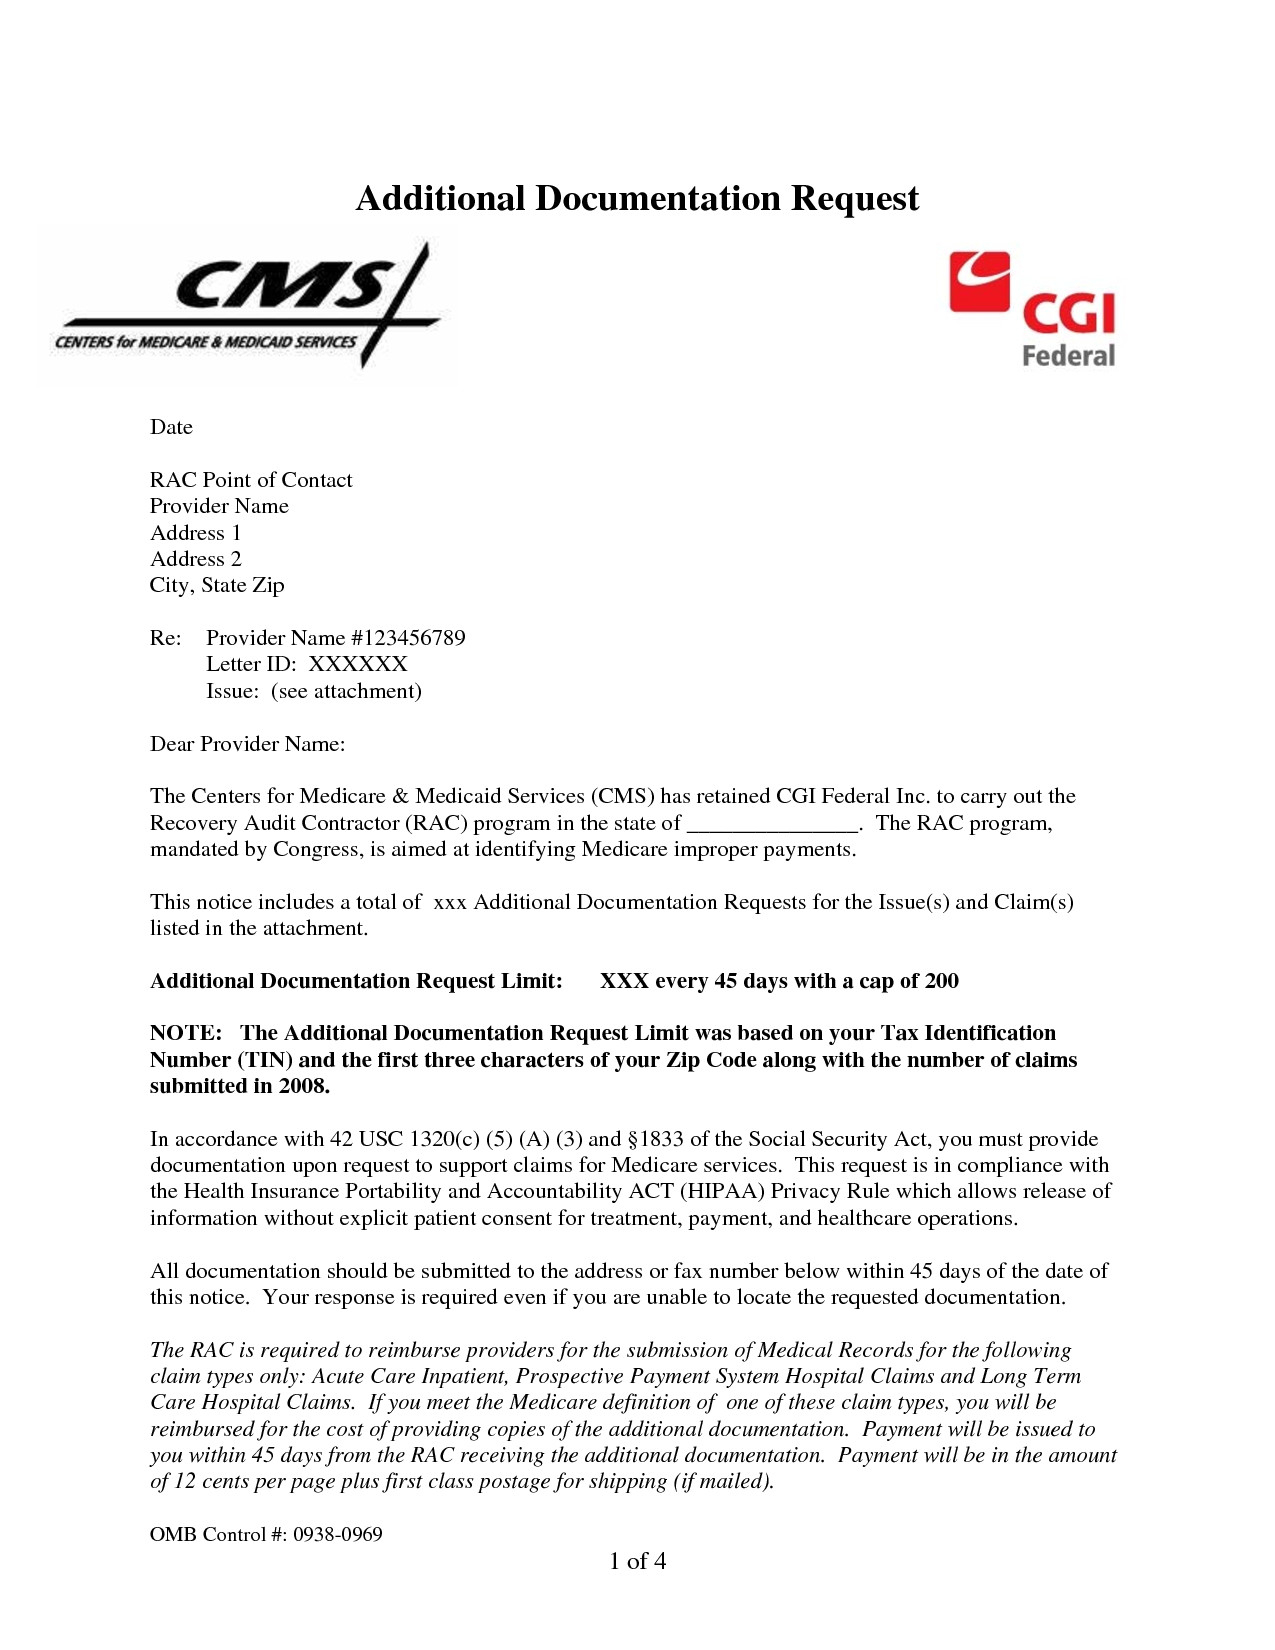 Auto Accident Demand Letter Template - 40 Luxury Sample Demand Letter to Insurance Pany